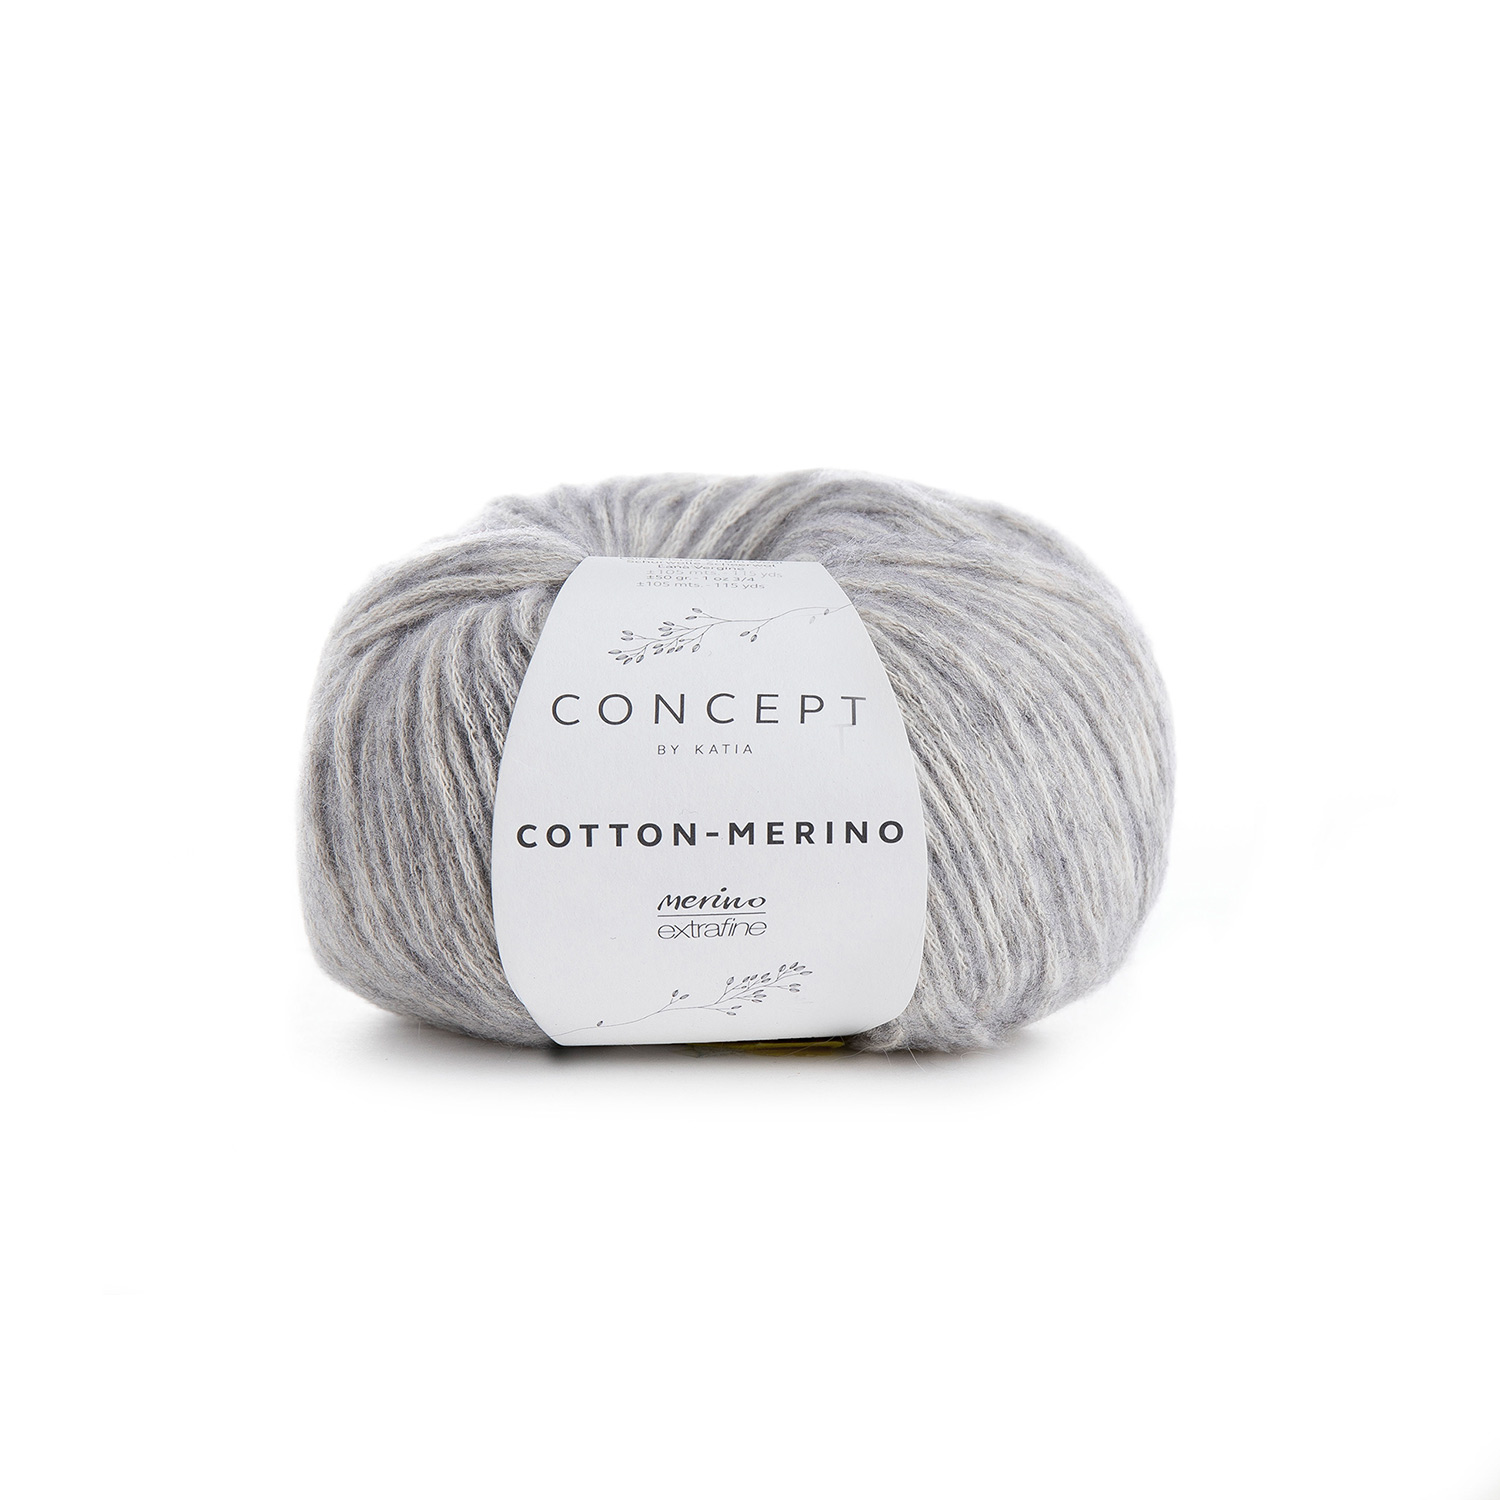 COTTON-MERINO - Autumn / Winter - yarns | Katia.com